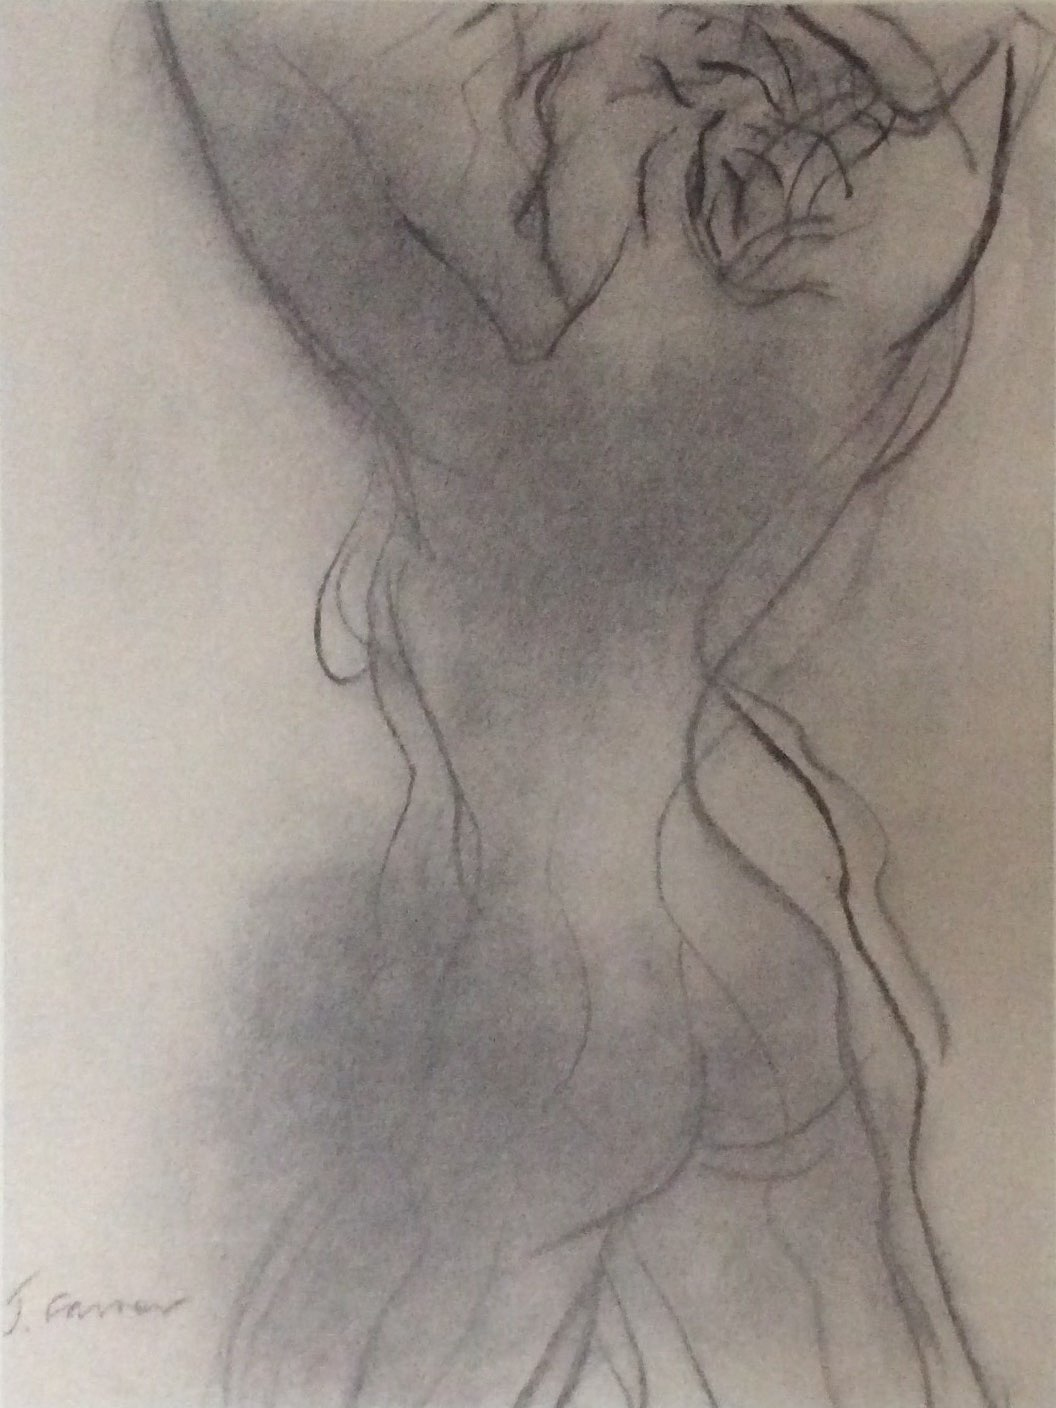 Stretch1 charcoal 38x50